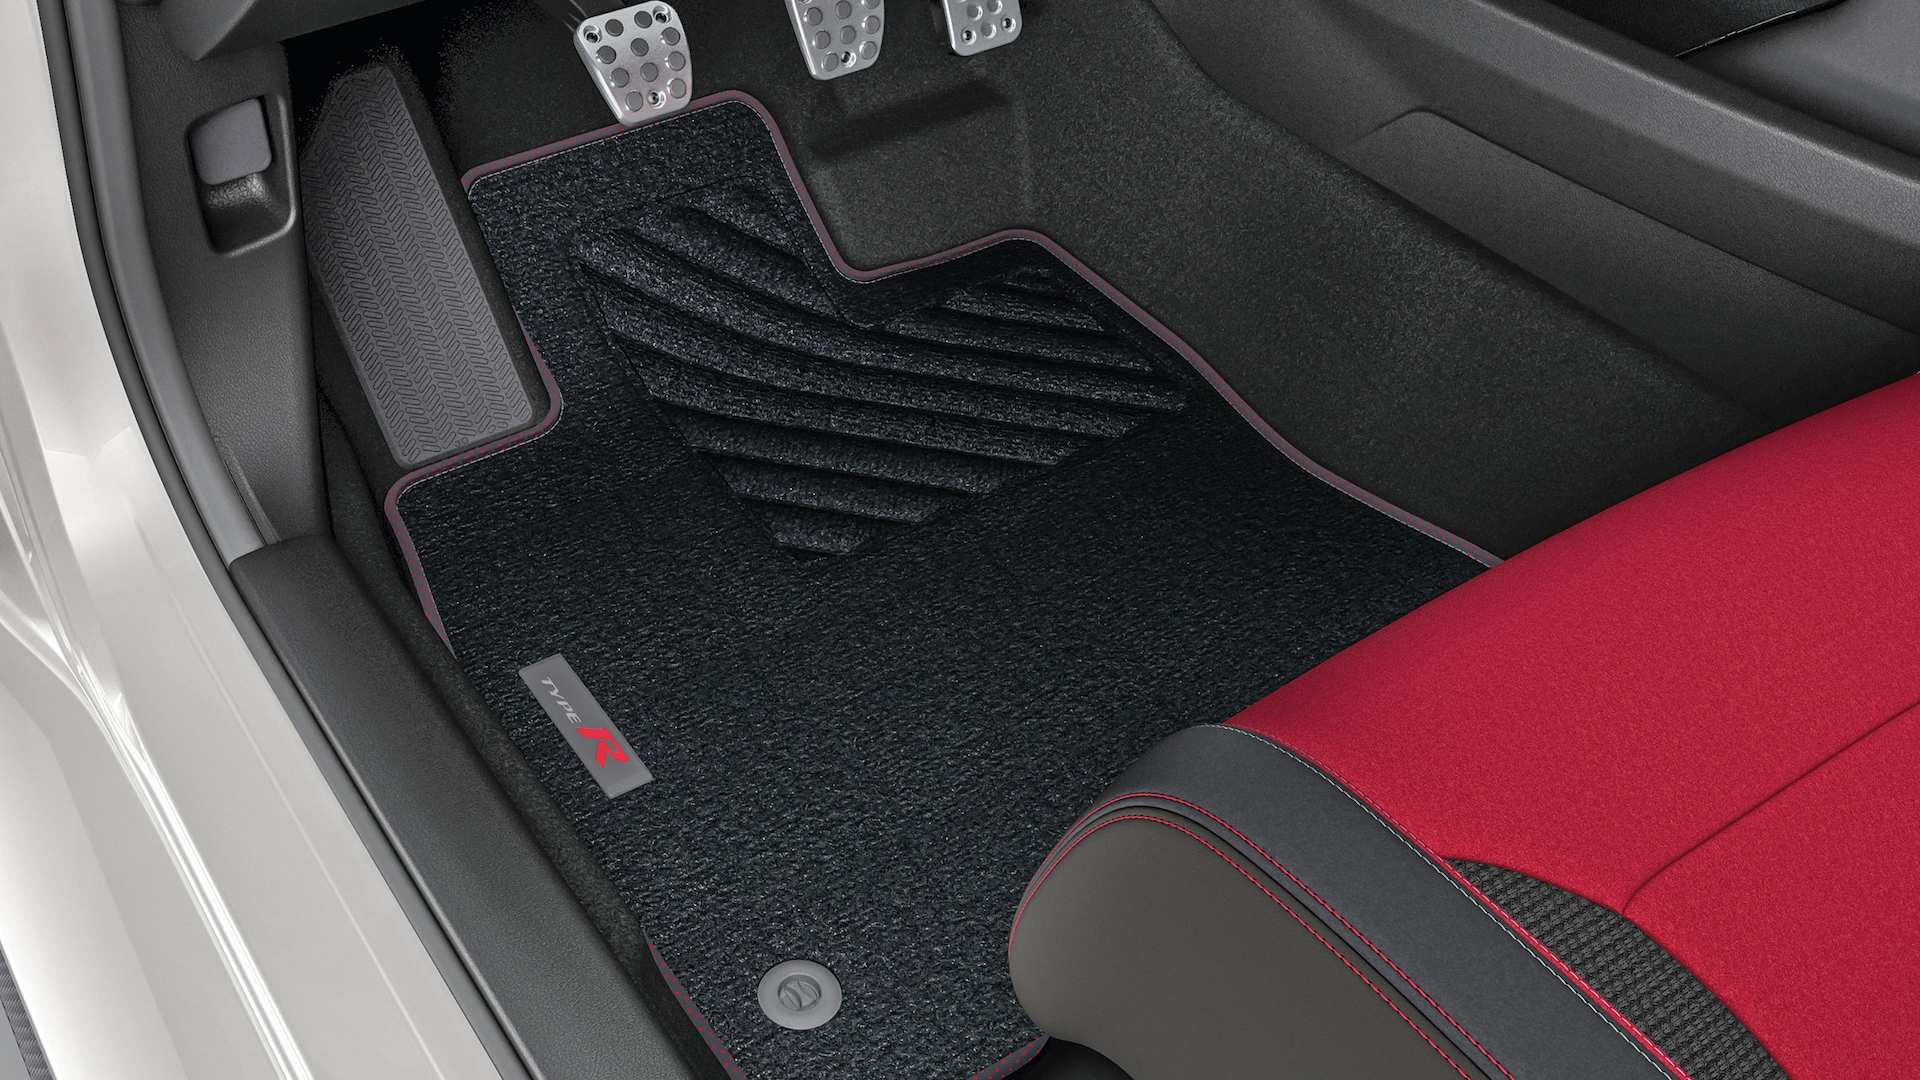 Detail view of Honda Genuine Accessory carpet floor mat in the 2021 Honda Civic Type R.